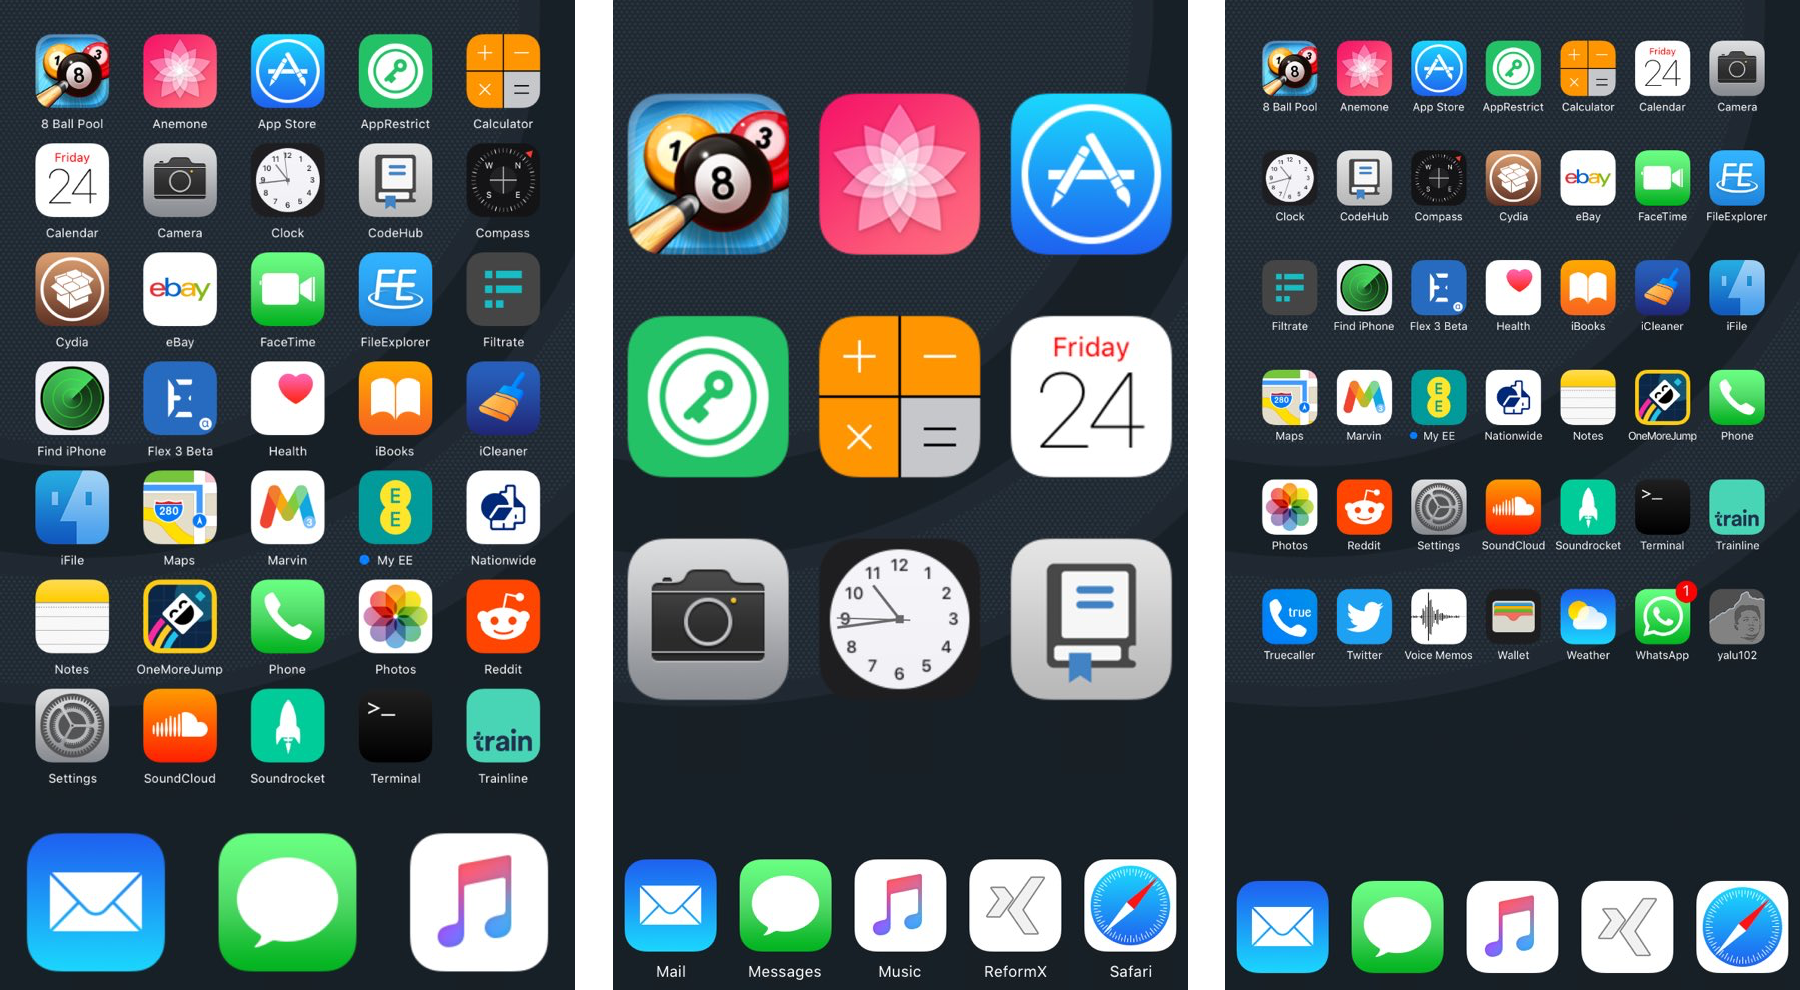 ReformX: customize your Home screen layout and more